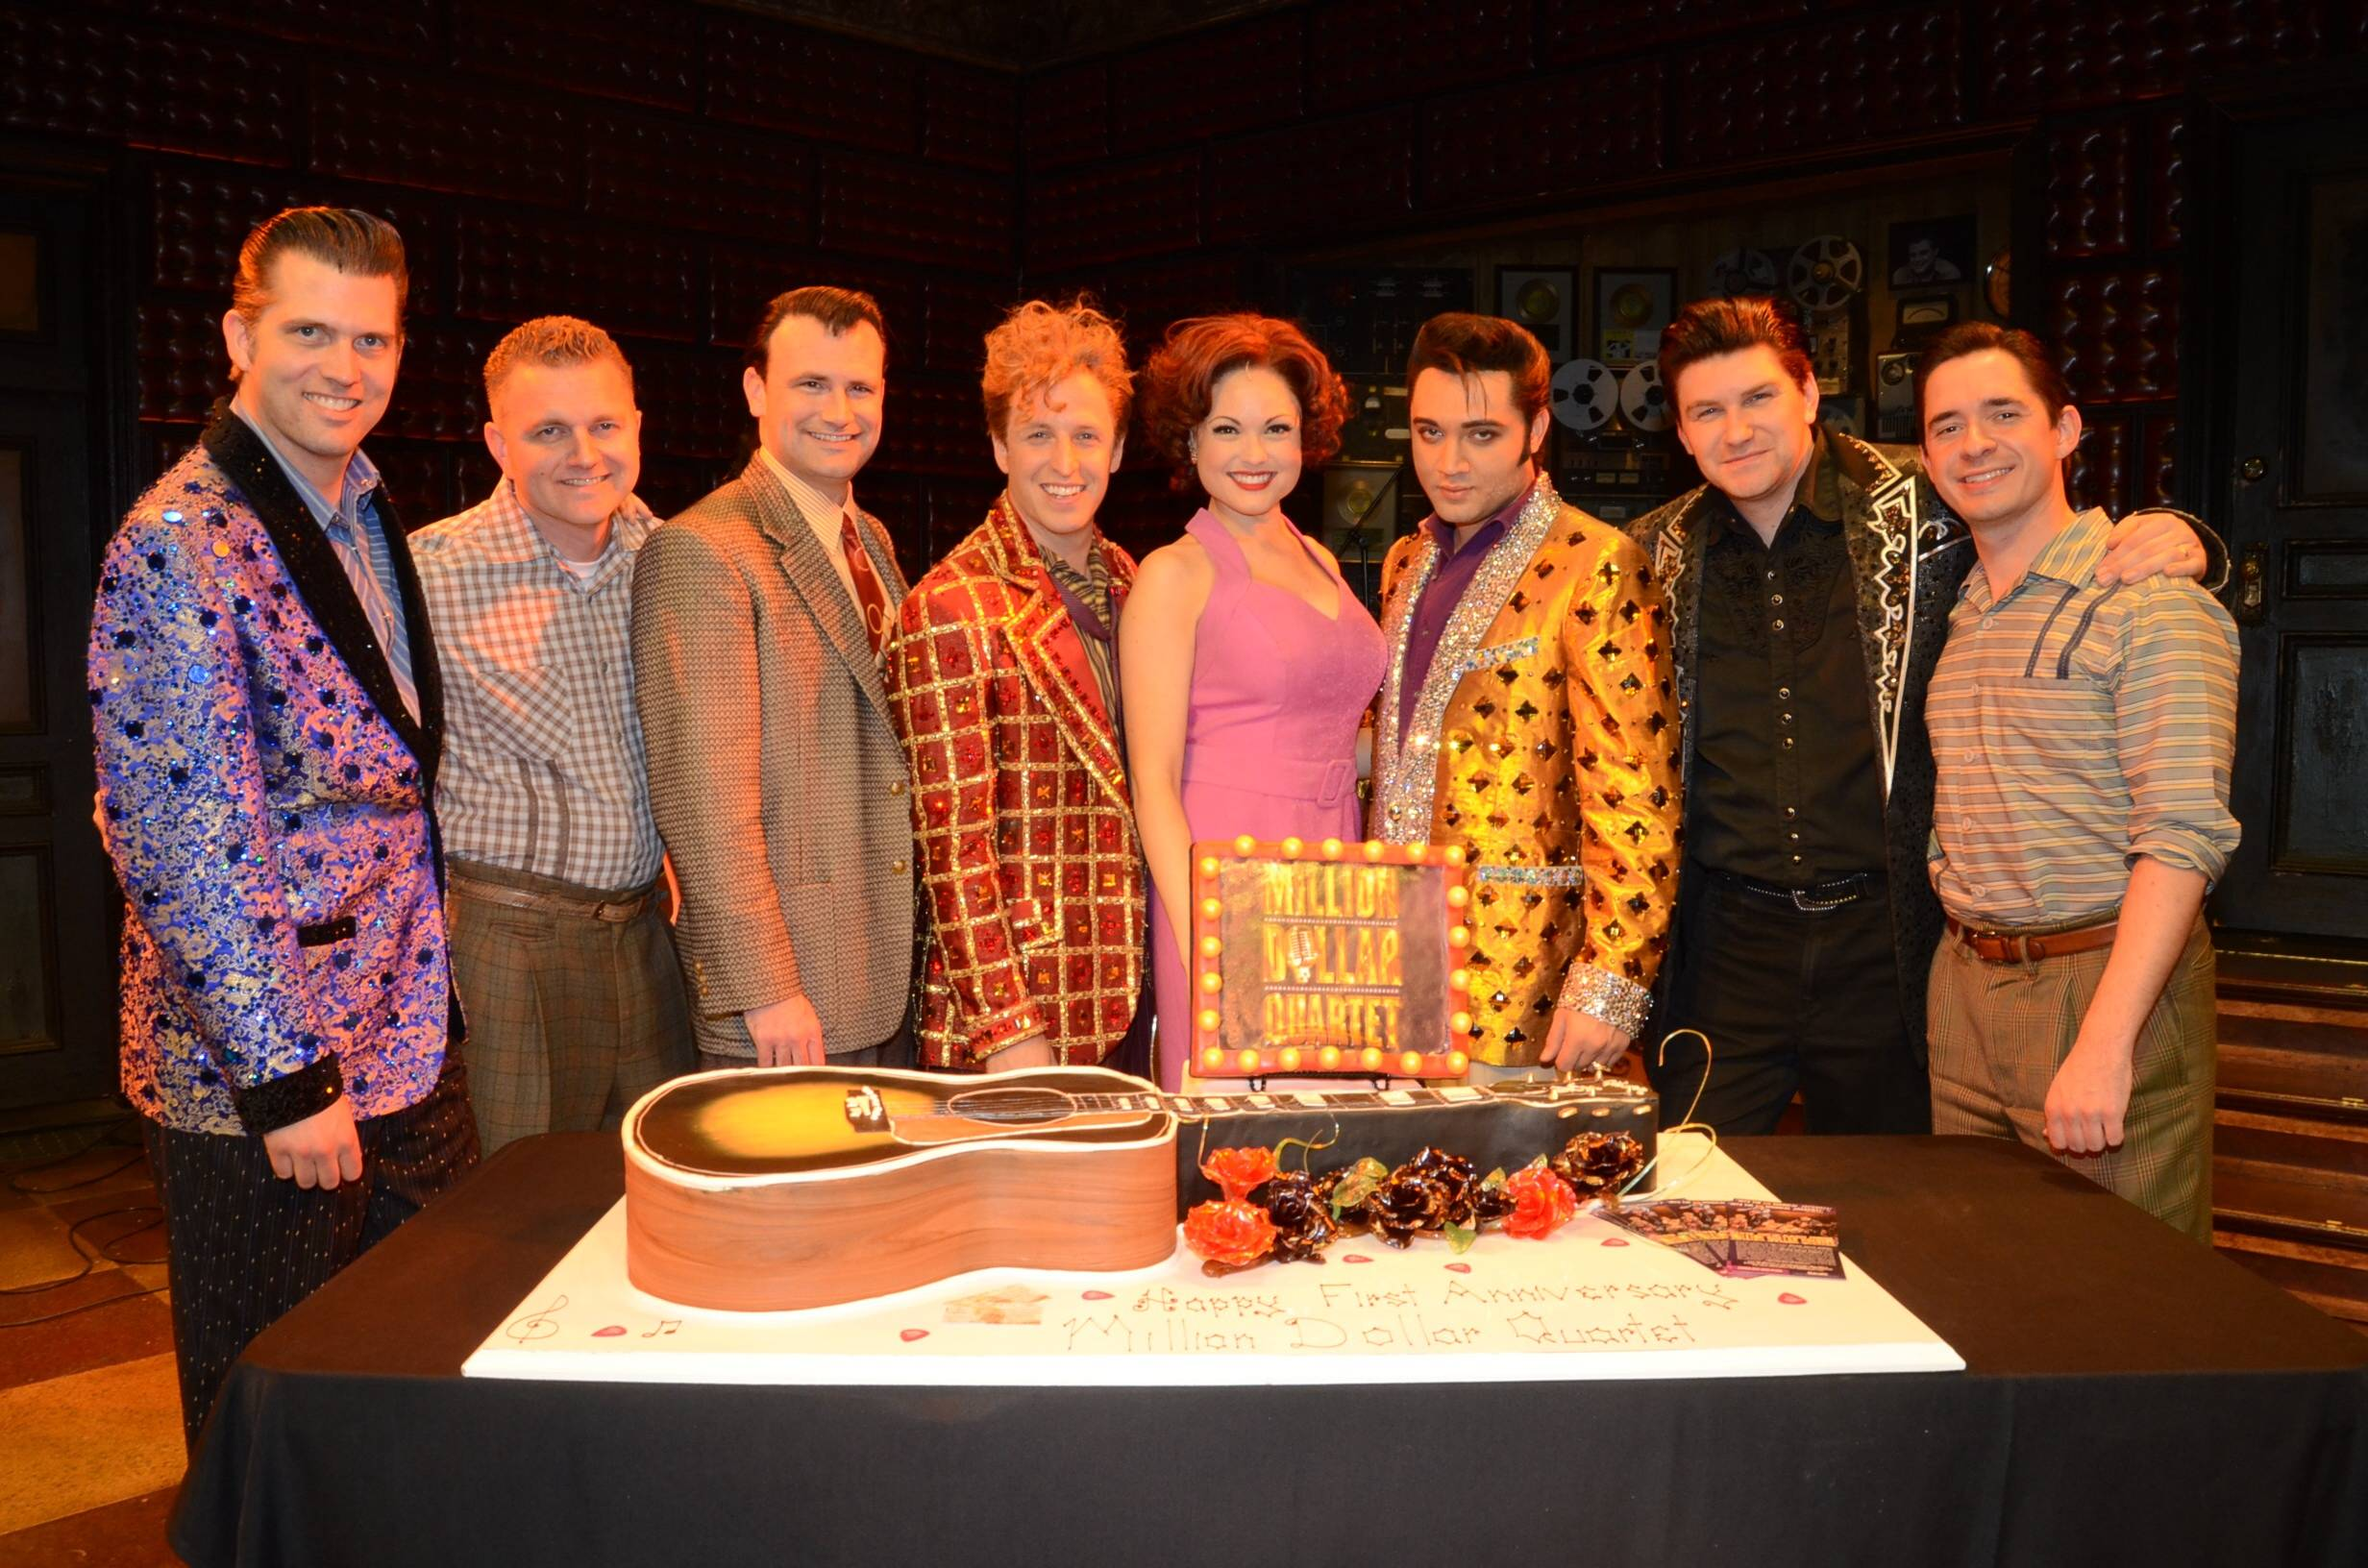 Cast of Million Dollar Quartet Las Vegas 2; First Anniversary 2.19.14 ©Caesars Entertainment